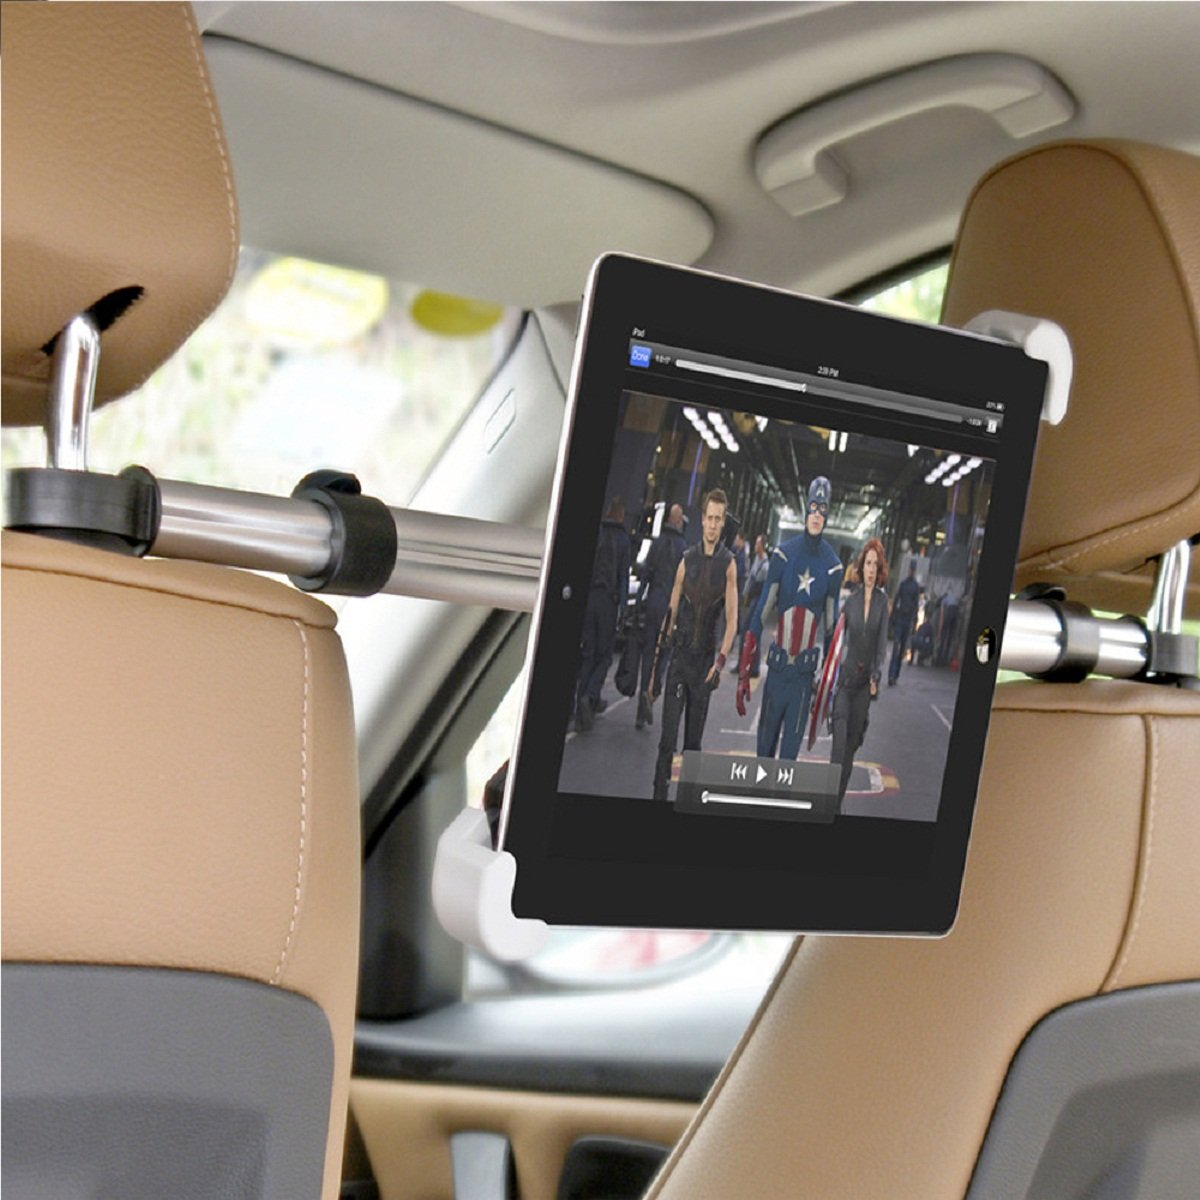 Amazon.com: Megadream Universal 360 Degree Rotation In Car Adjustable Headrests ABS Mount Holder with Aluminum Pole for 7 to 11 inch Tablet PC iPad, Asus, ...